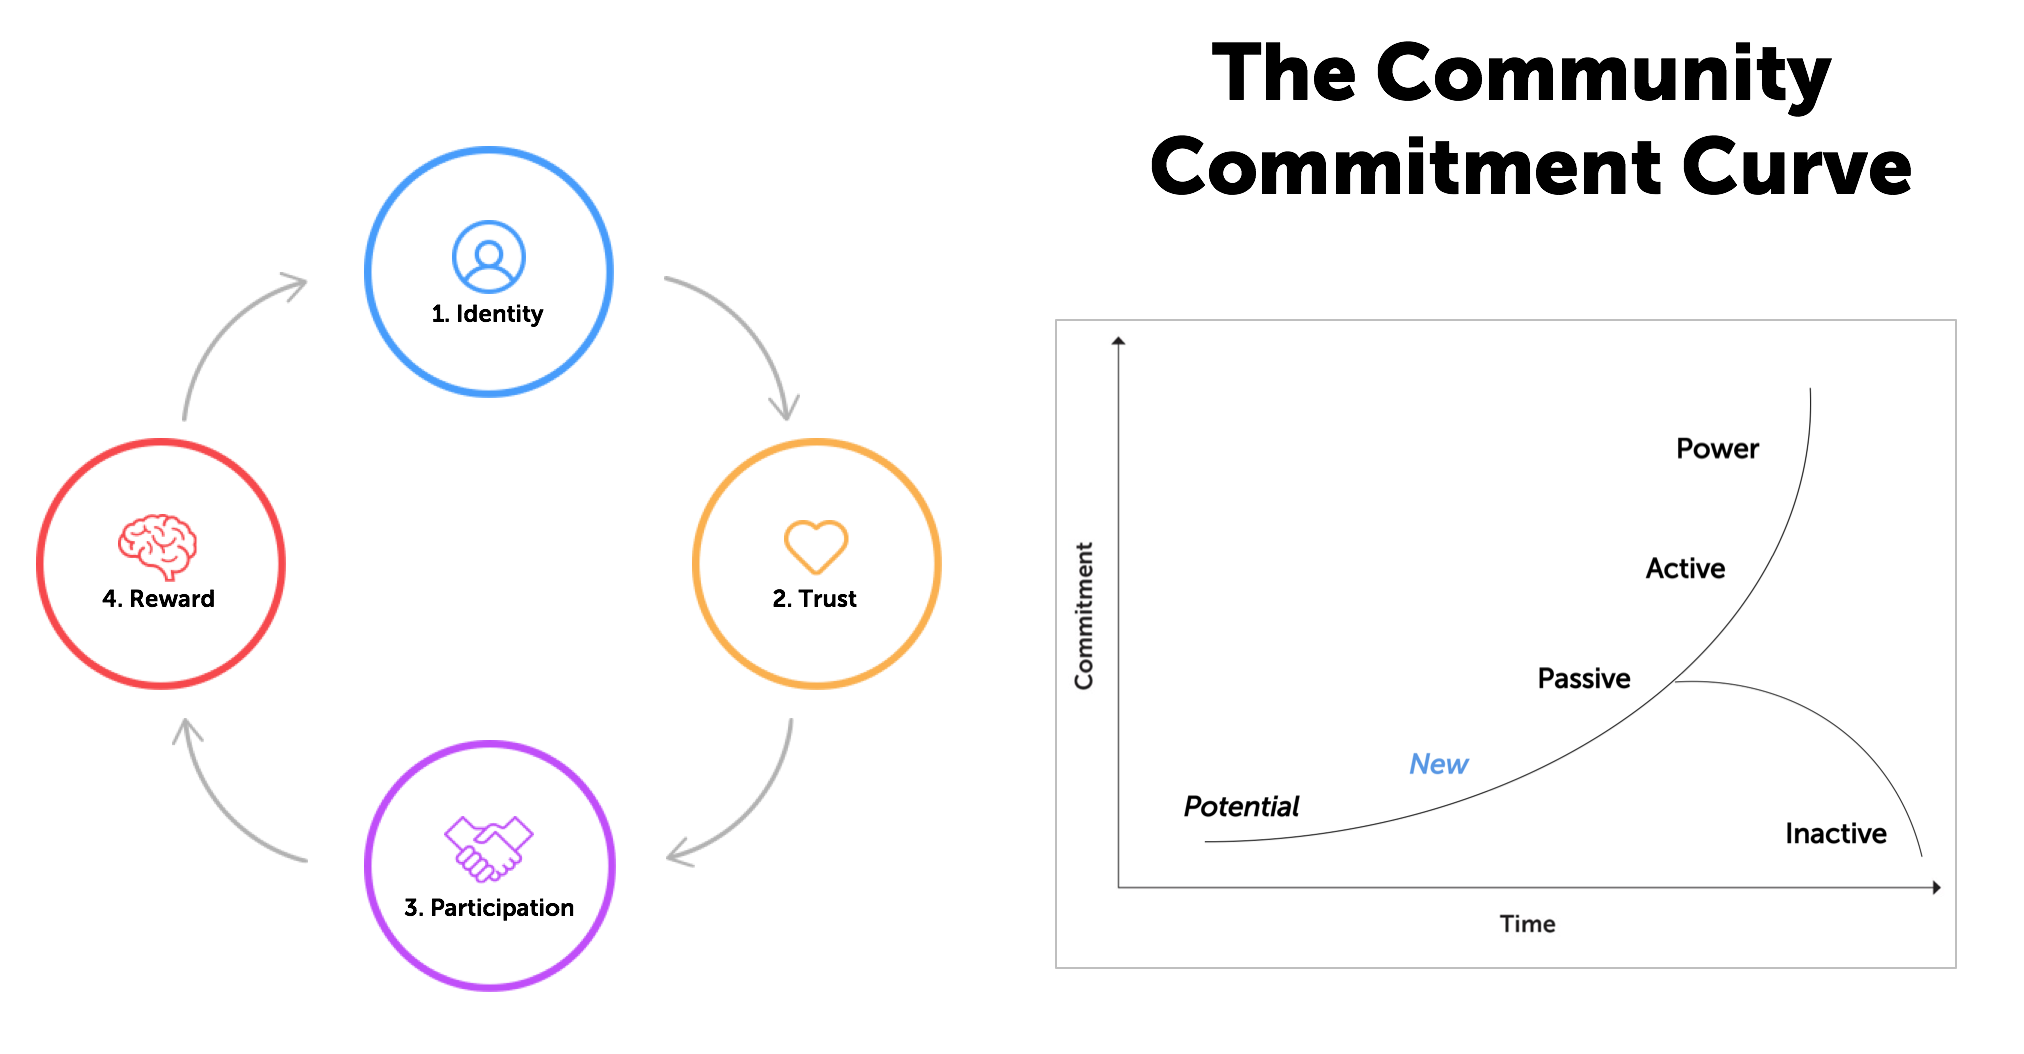 Commitment Curve